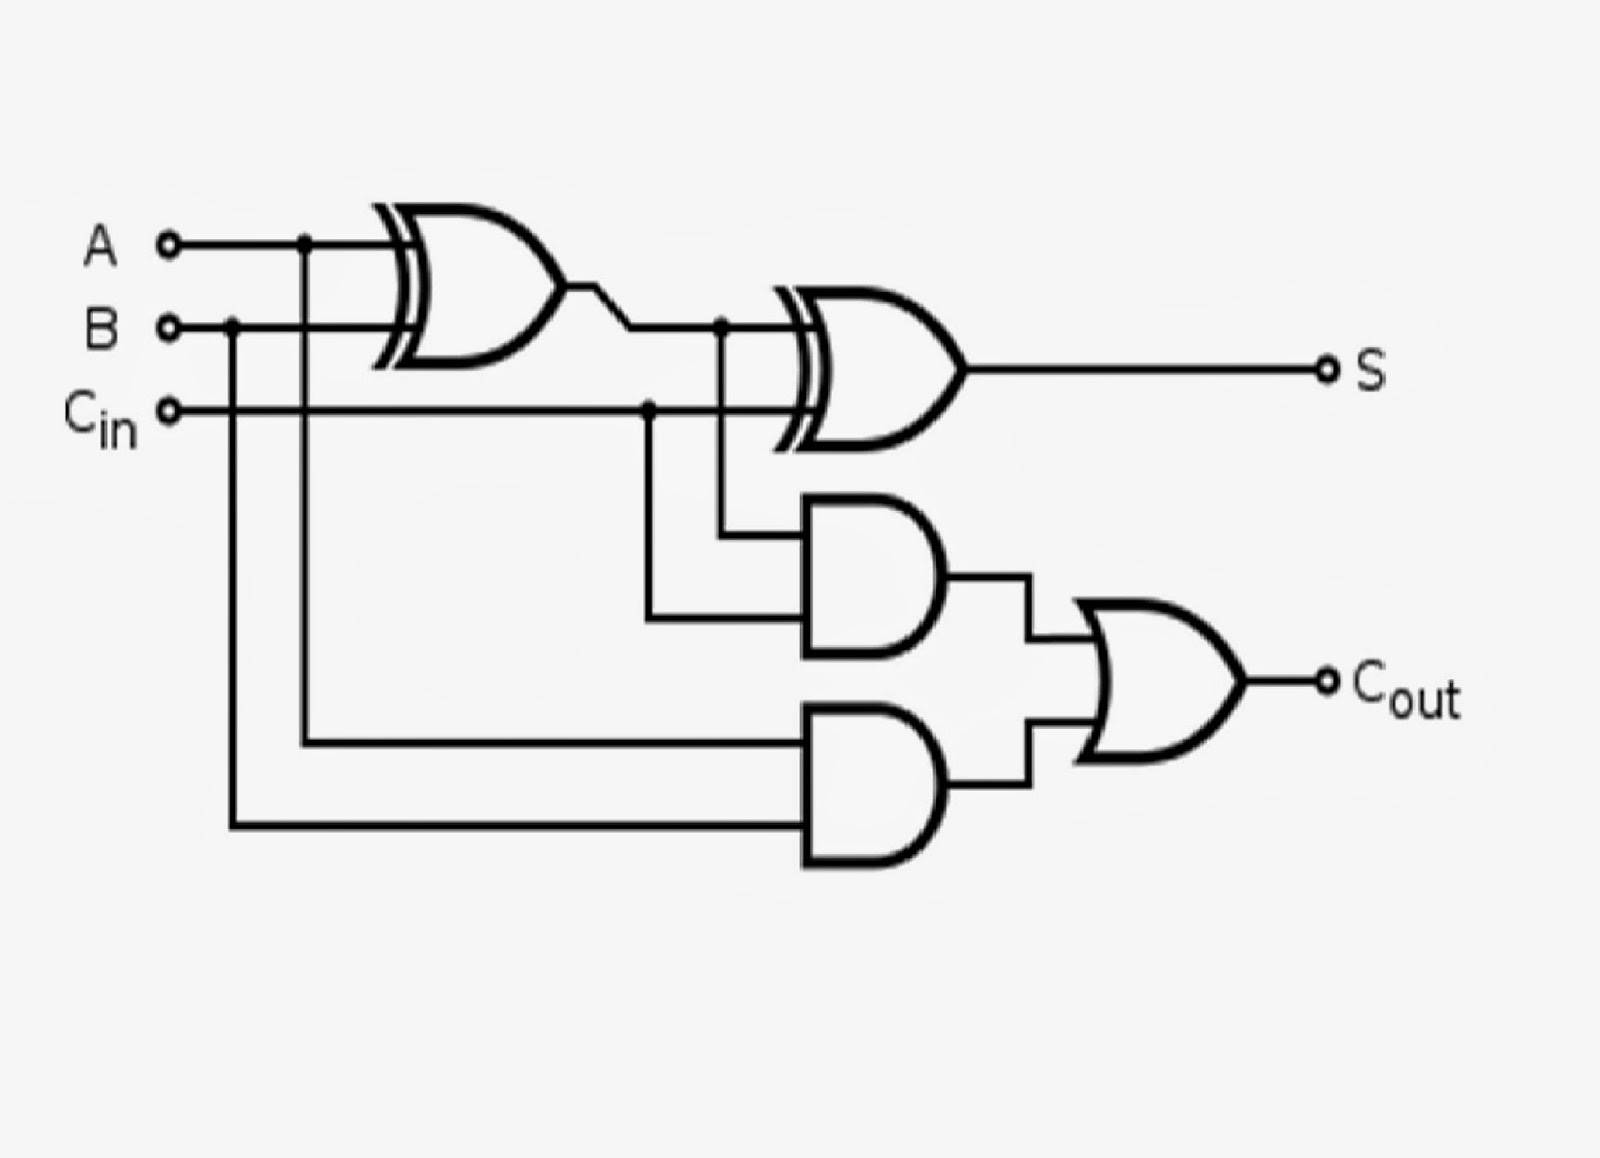 VLSI-Simplified: Getting started with VHDL codes